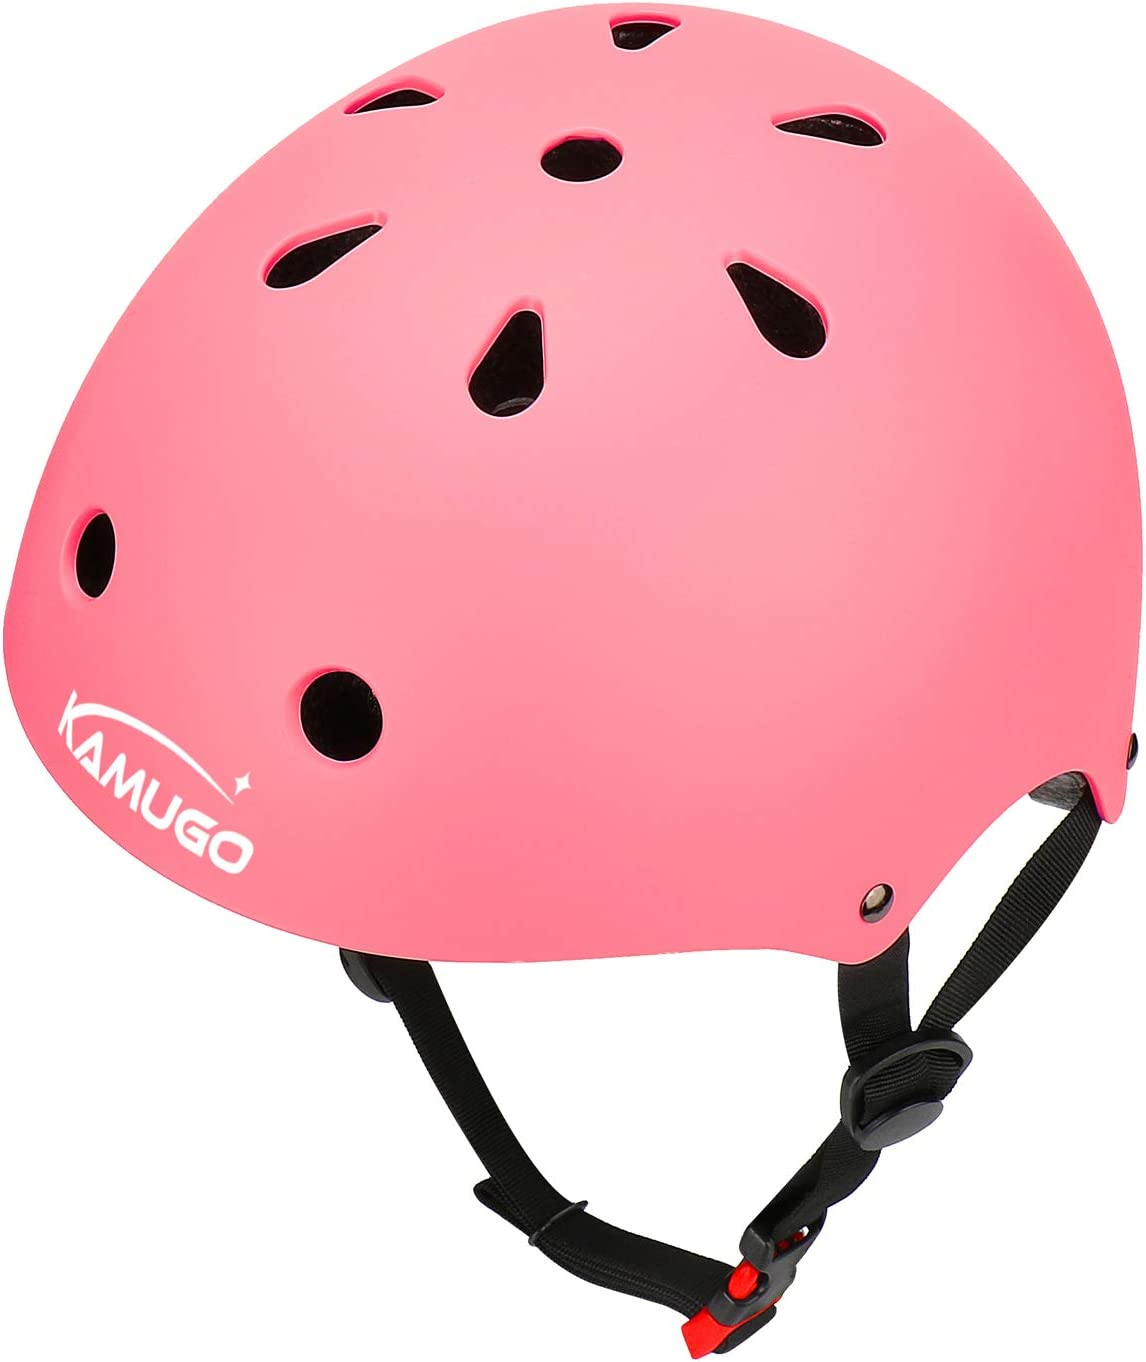 KAMUGO Kids Bike Helmet Adjustable from Toddler to Youth Size, Ages 3-8 Boys Girls Multi-Sport Safety Cycling Skating Scooter Helmet